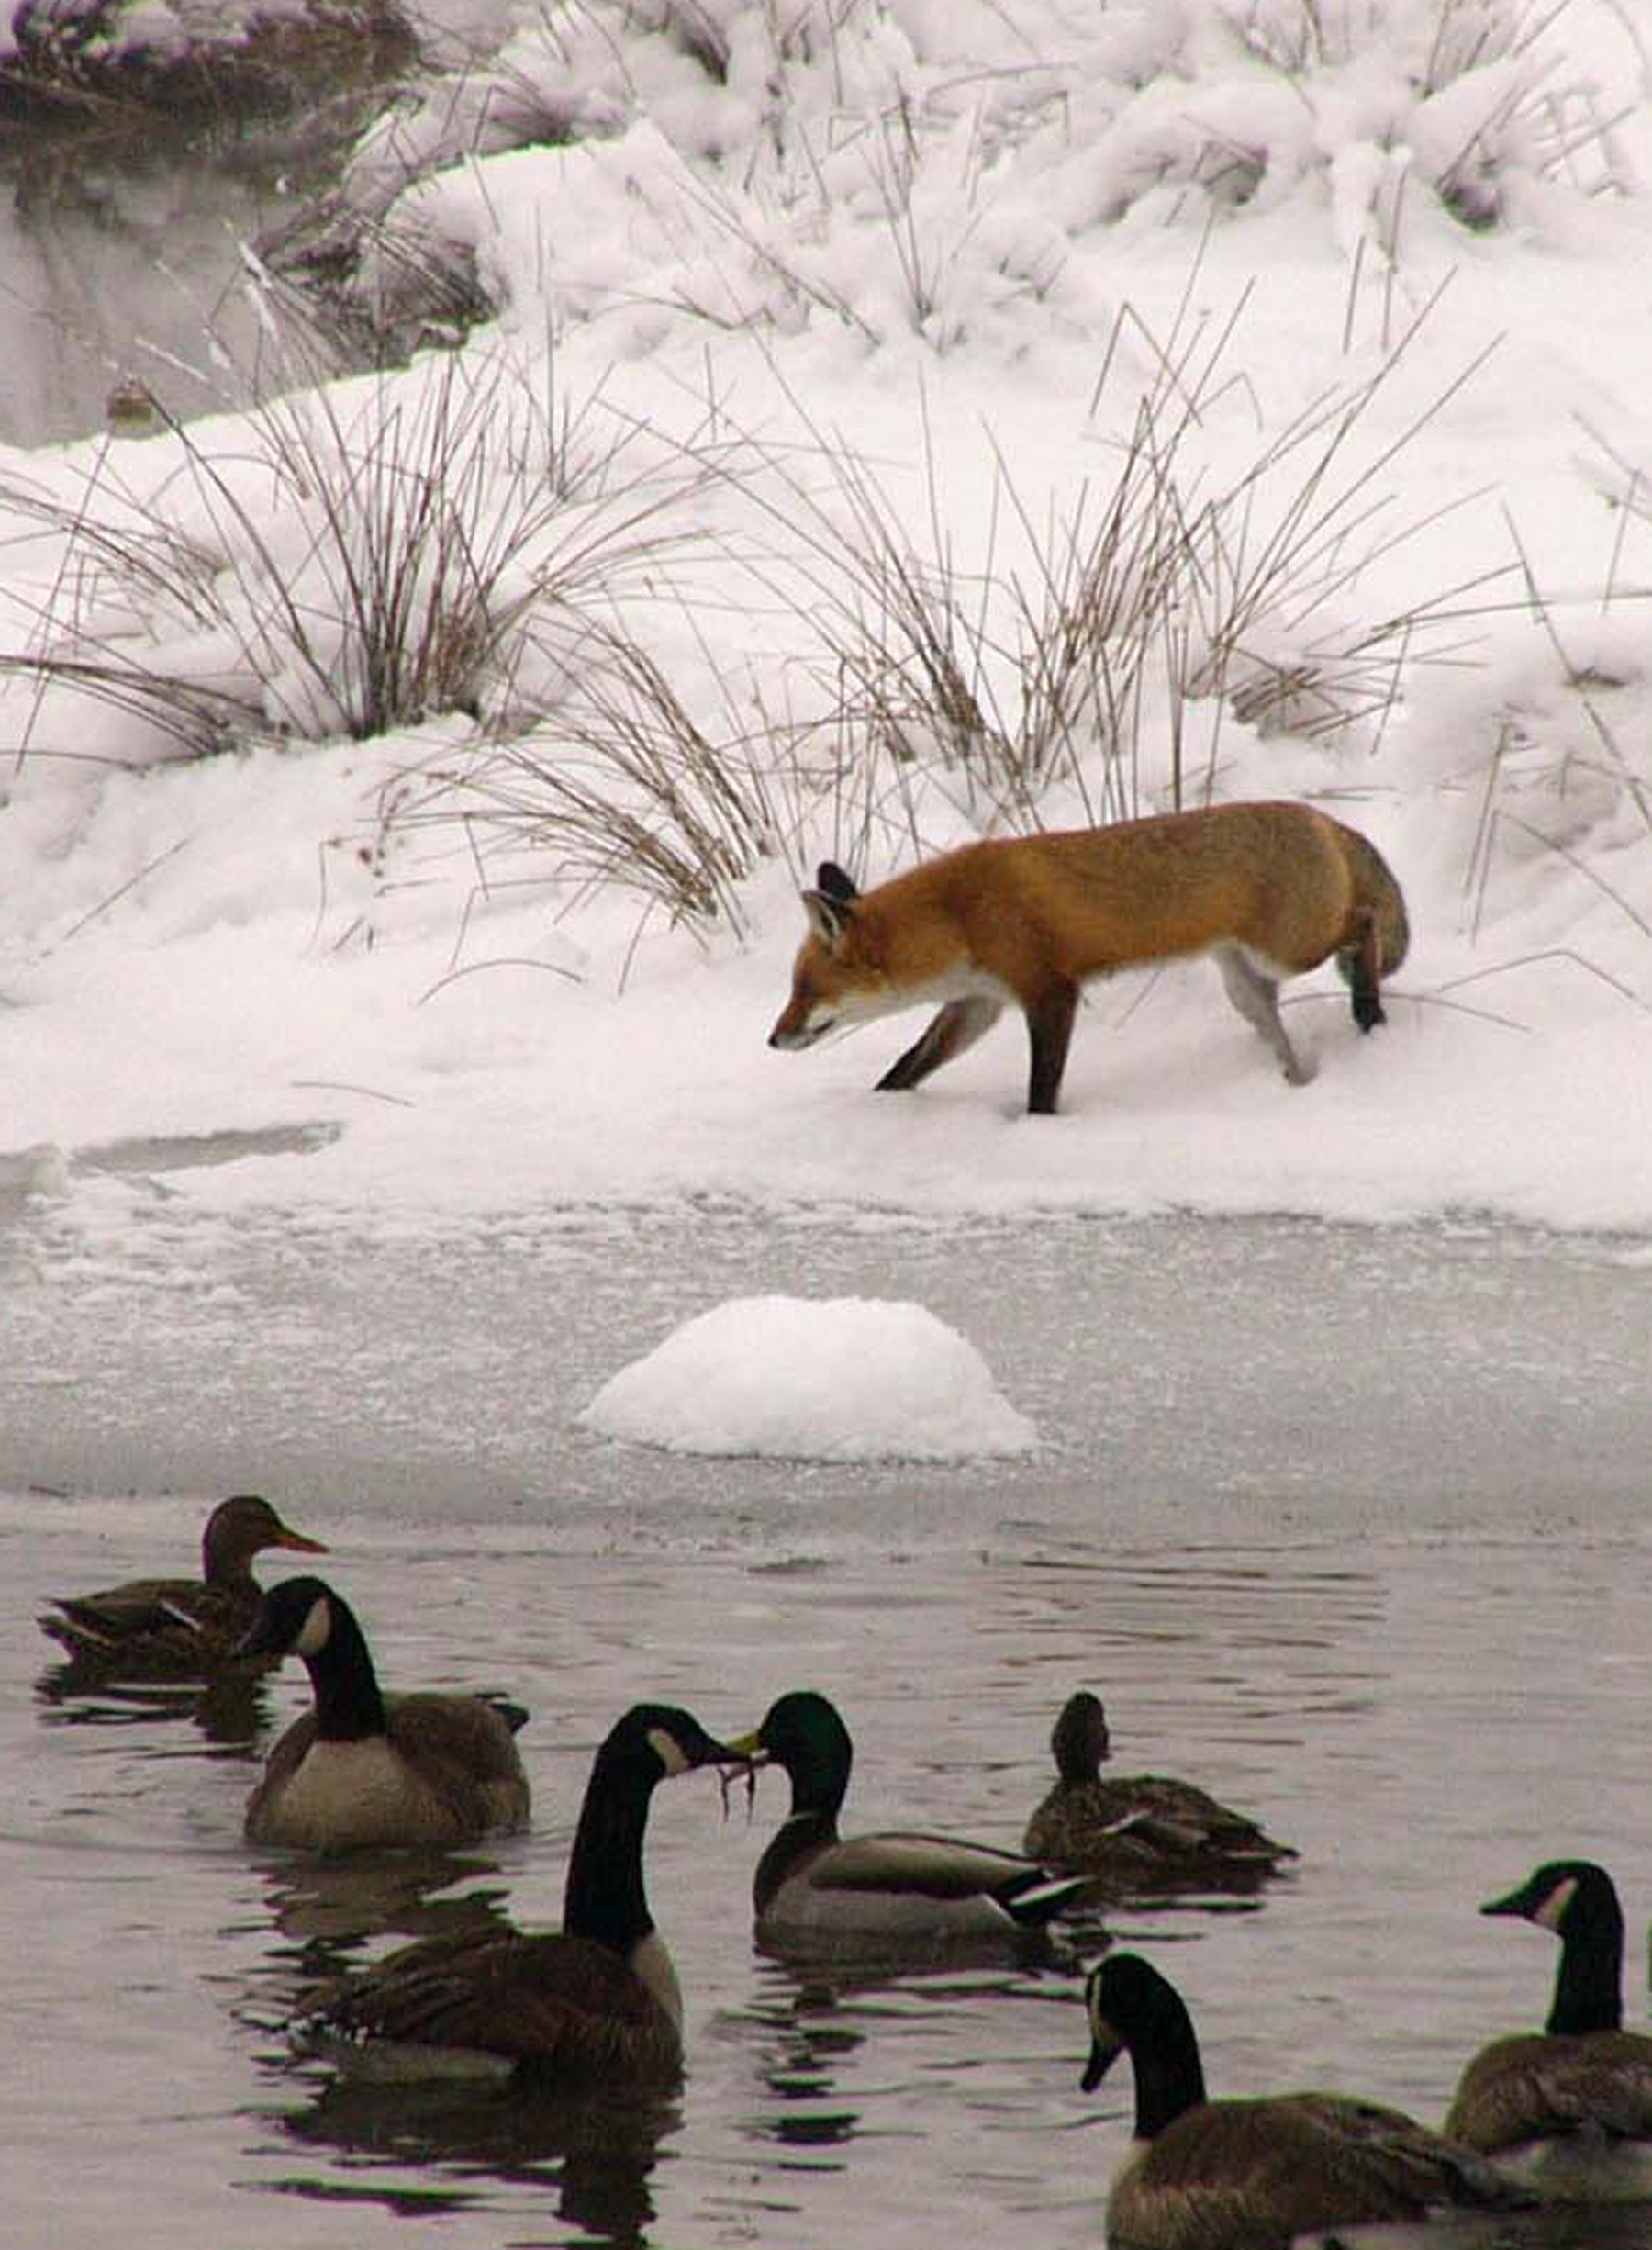 Red fox and Canada geese at the wetland mitigation site WSSI designed for Broadlands - Loudoun County, VA